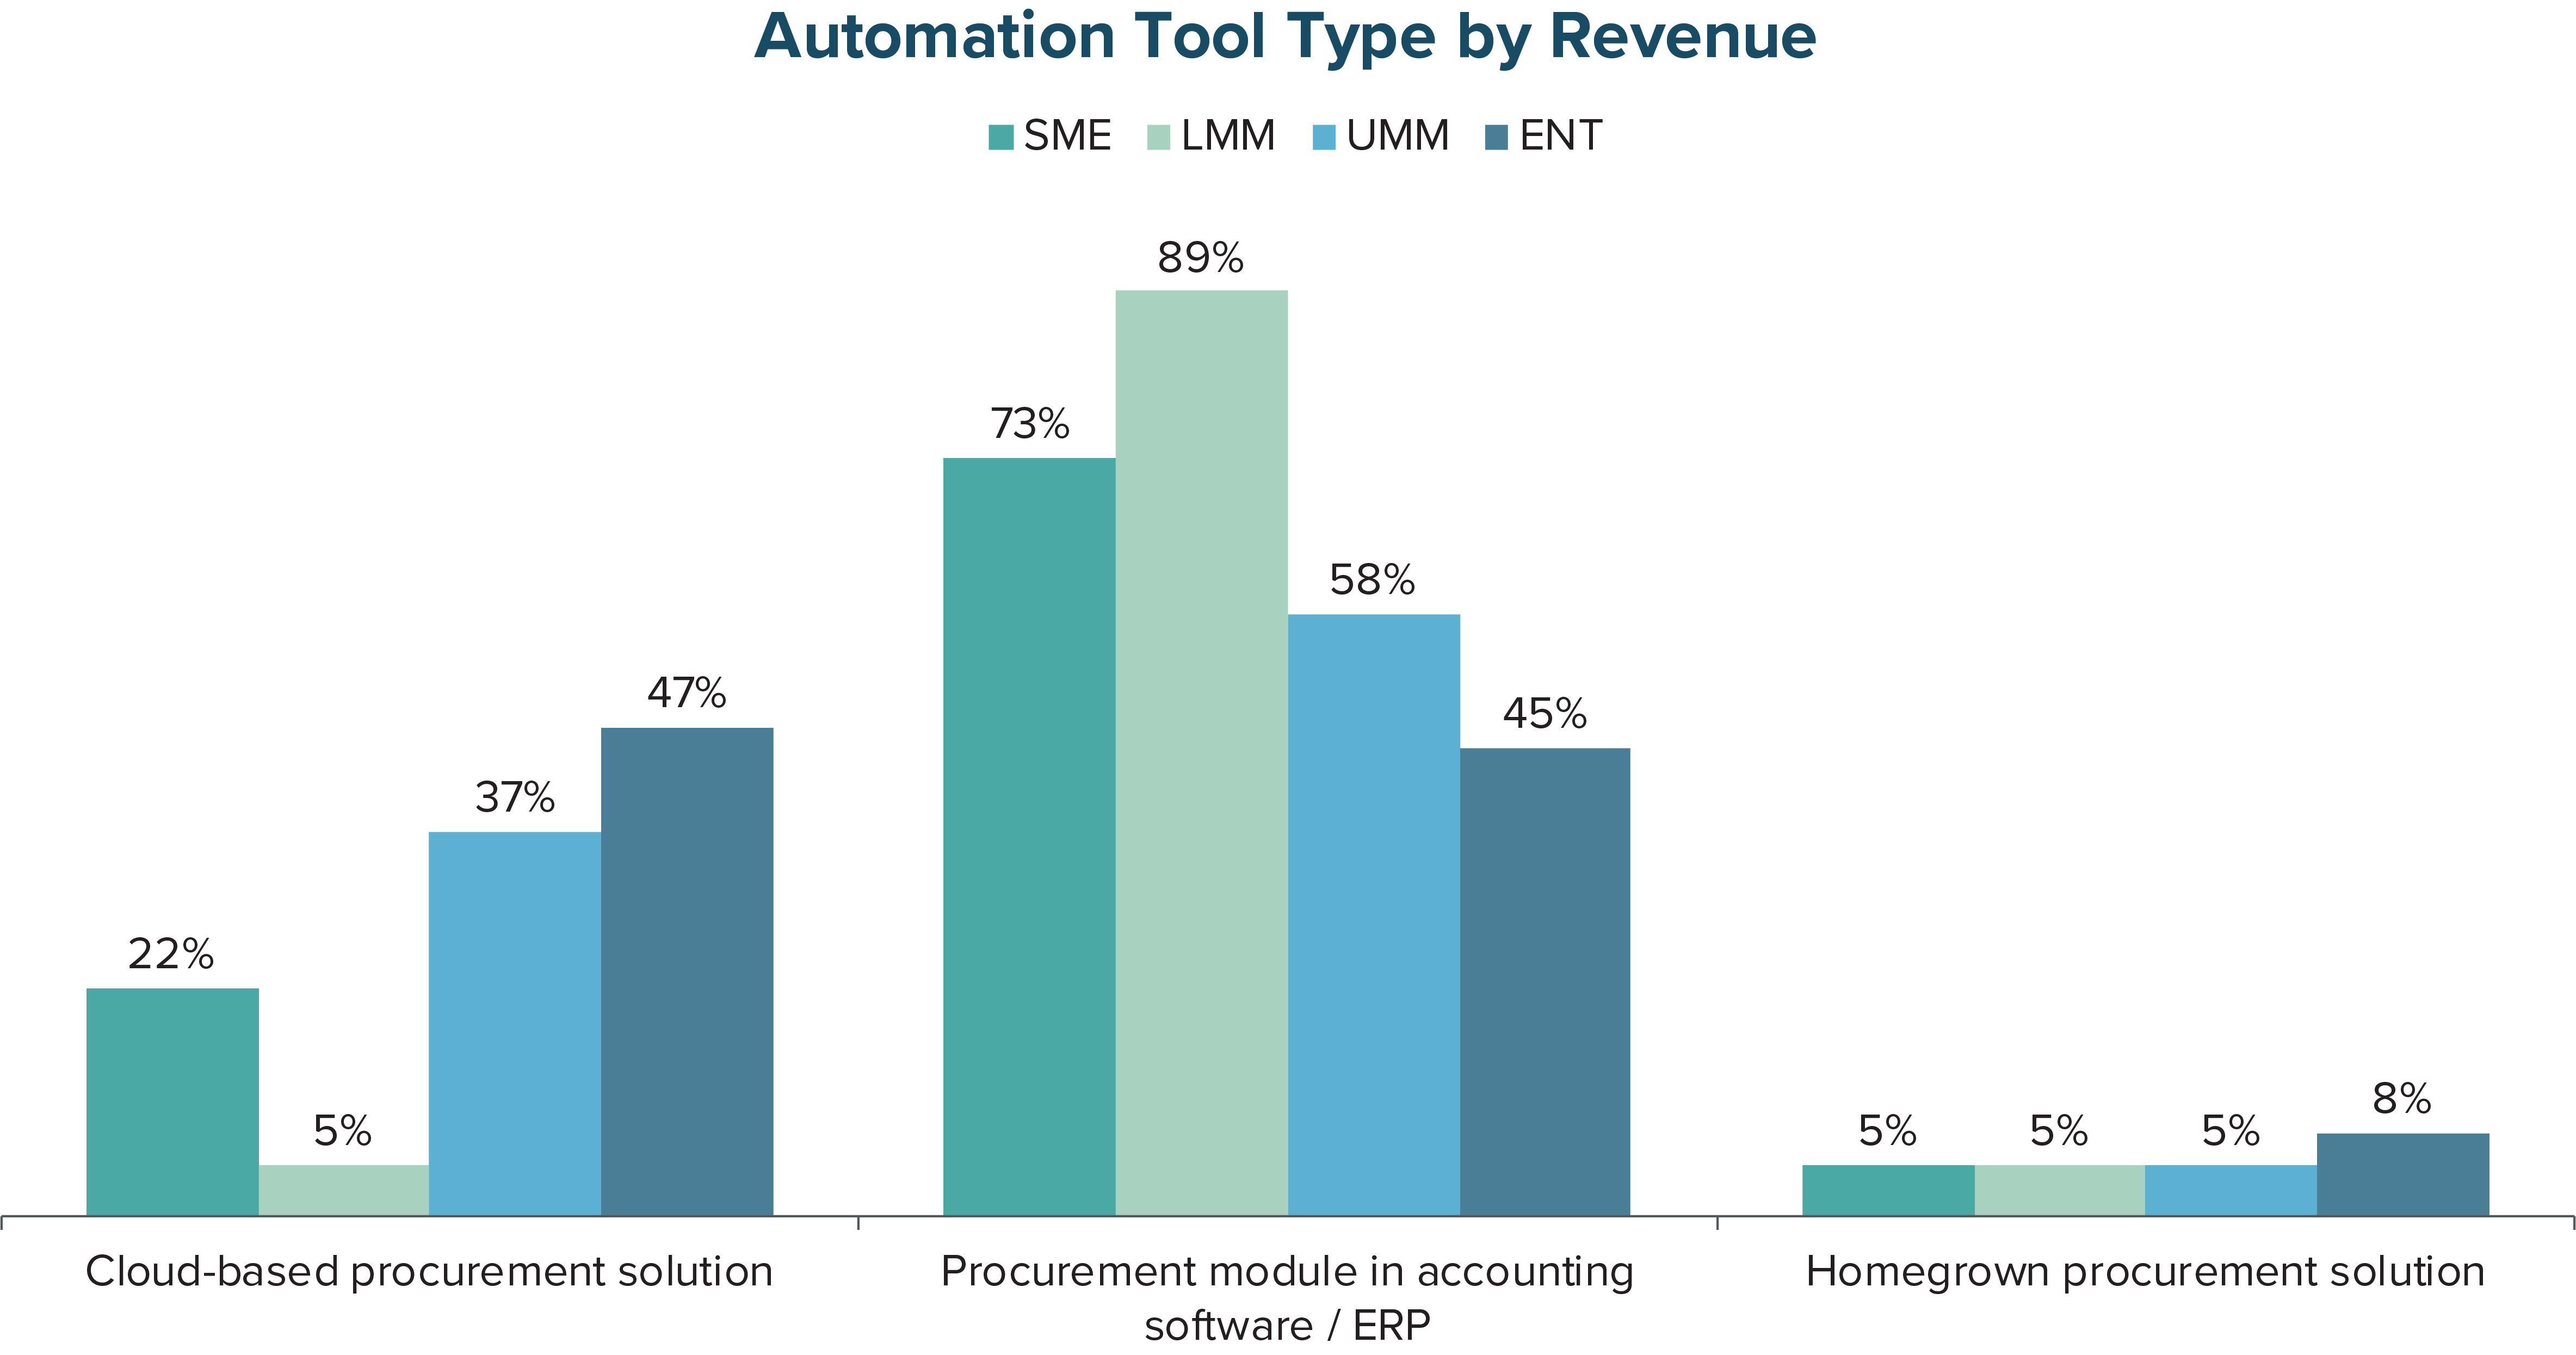 Automation Tool Type by Revenue